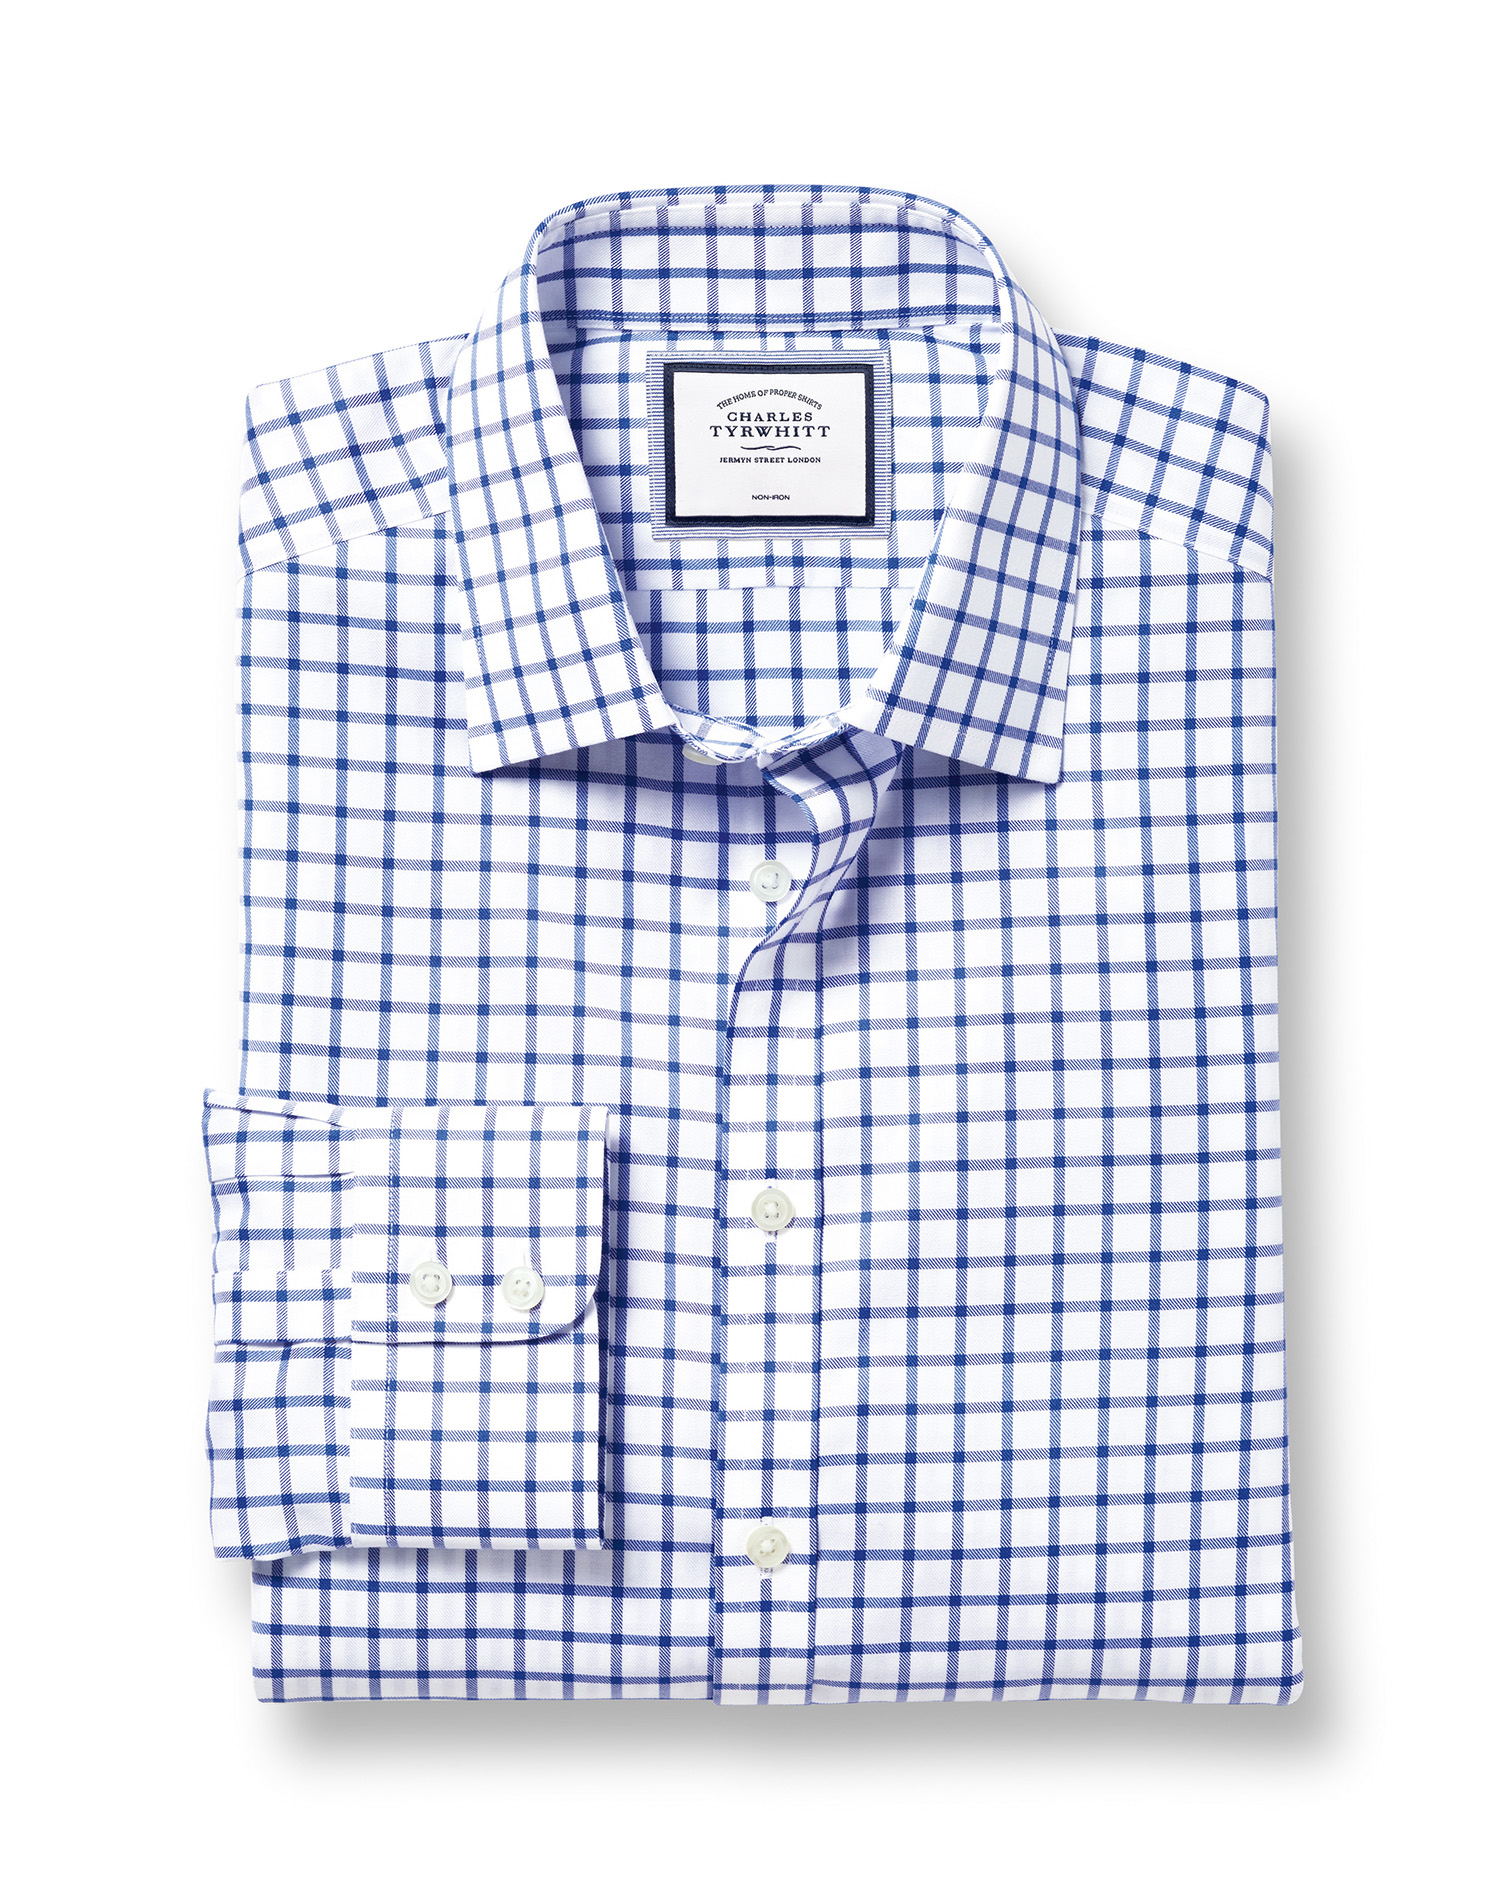 Slim Fit Non-Iron Twill Grid Check Royal Blue Cotton Formal Shirt Single Cuff Size 15.5/36 by Charle